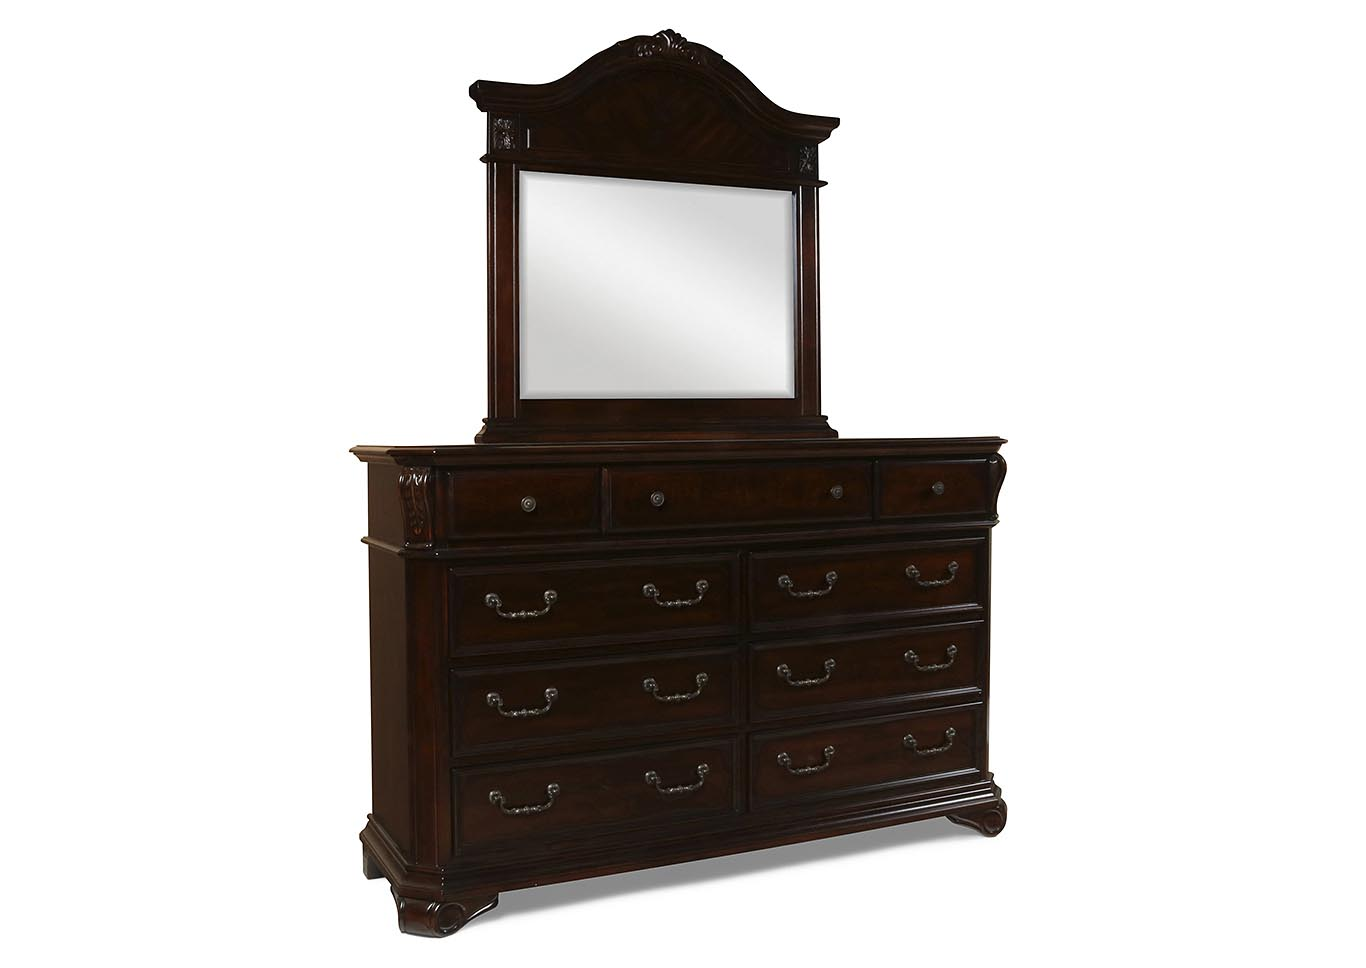 Emilie Tudor Brown Dresser and Mirror,New Classic